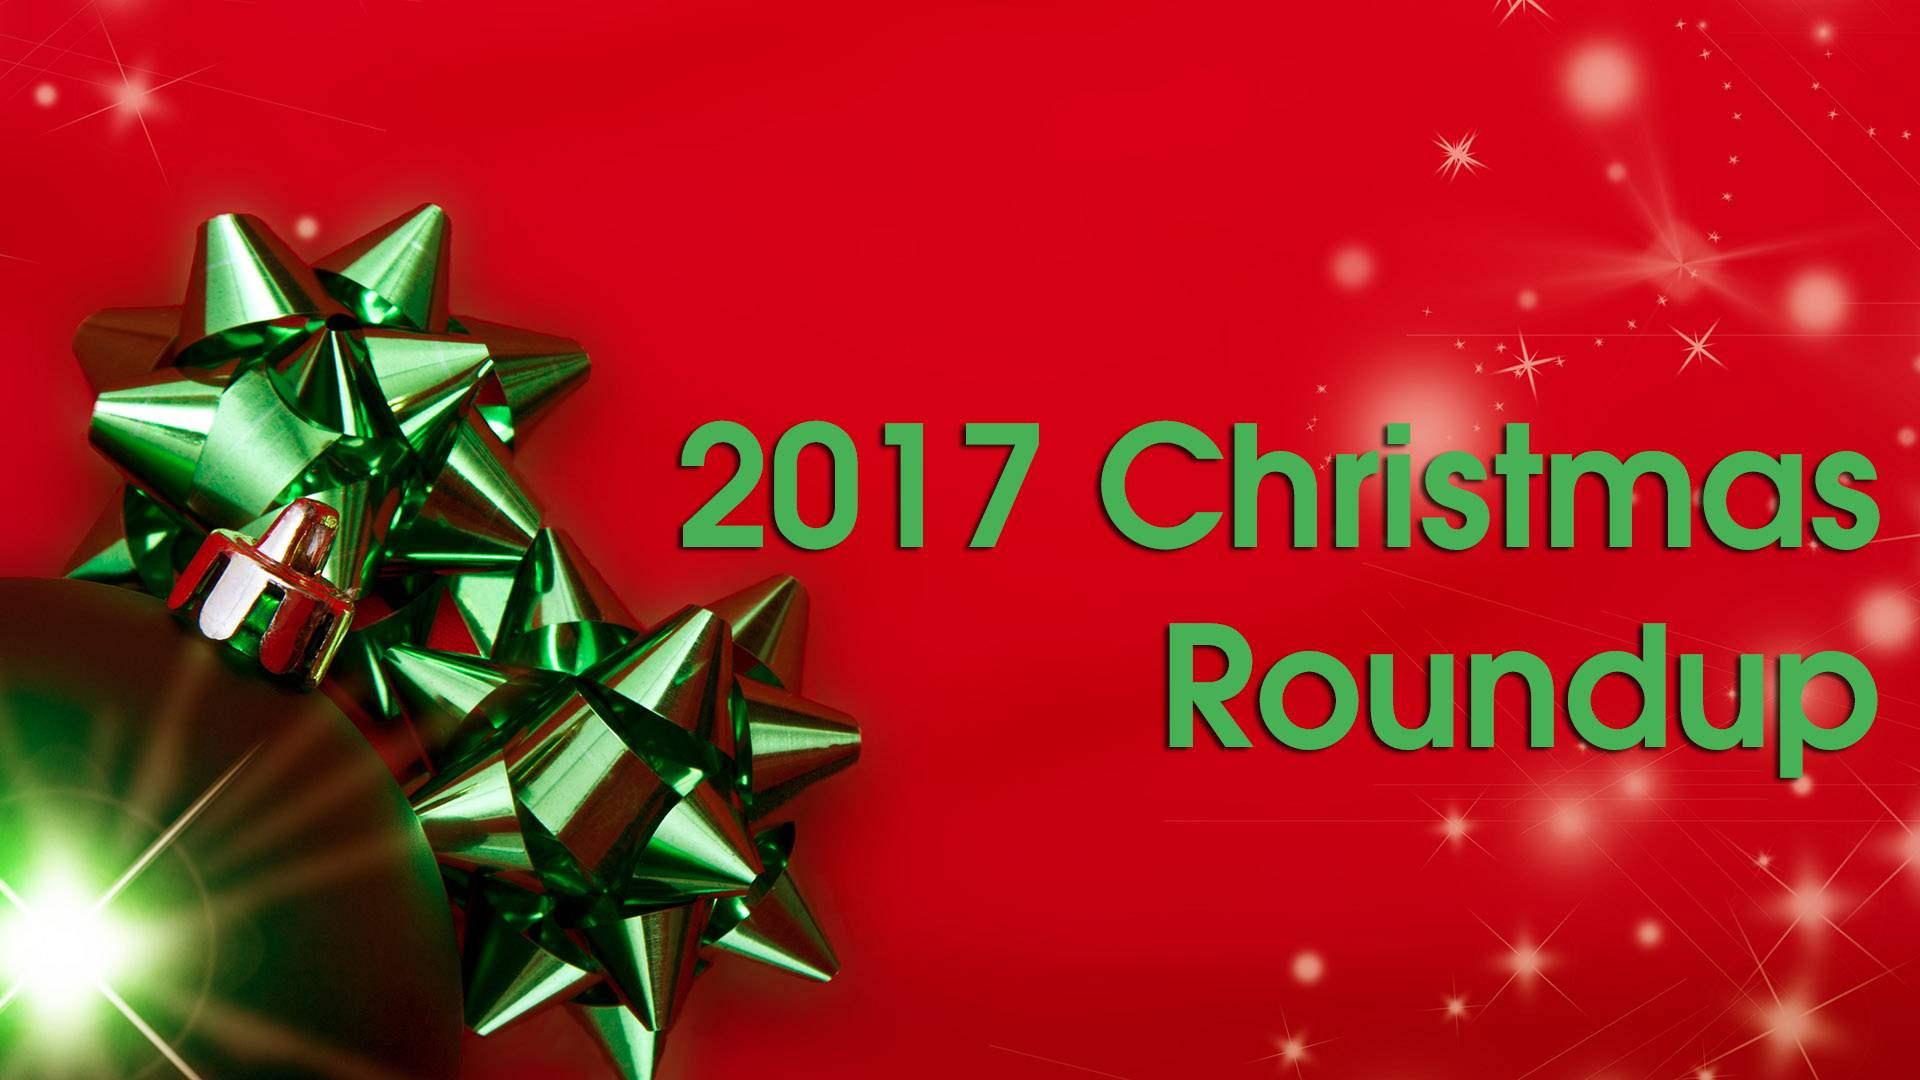 Christmas Roundup 2017: Your daily guide to holiday events for the